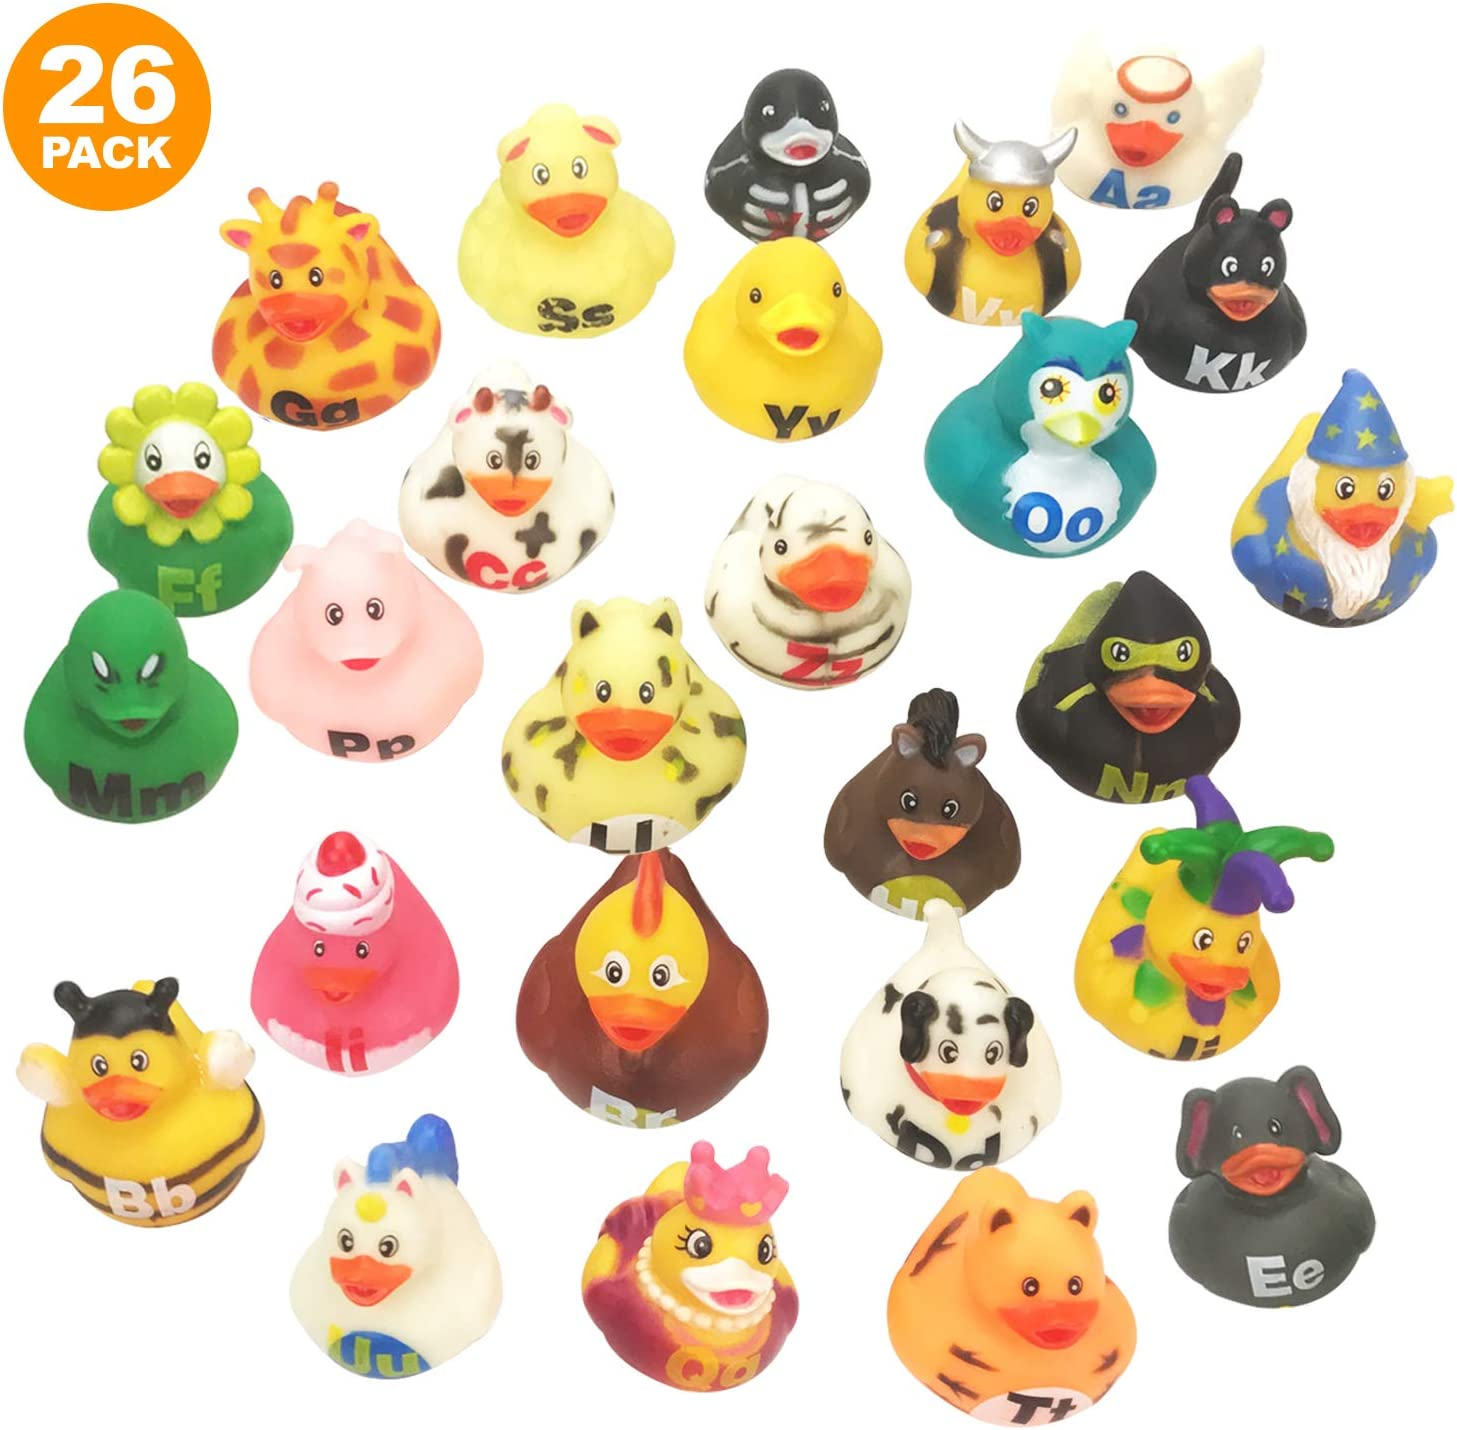 Learn Your Alphabet Toys for Bath Livativ 2 Inch Alphabet Rubber Duckies Birthday Mini Bath Time Toys for Infants and Toddlers from Playko Tiny Rubber Ducks for Kids Baby Shower Pack of 26